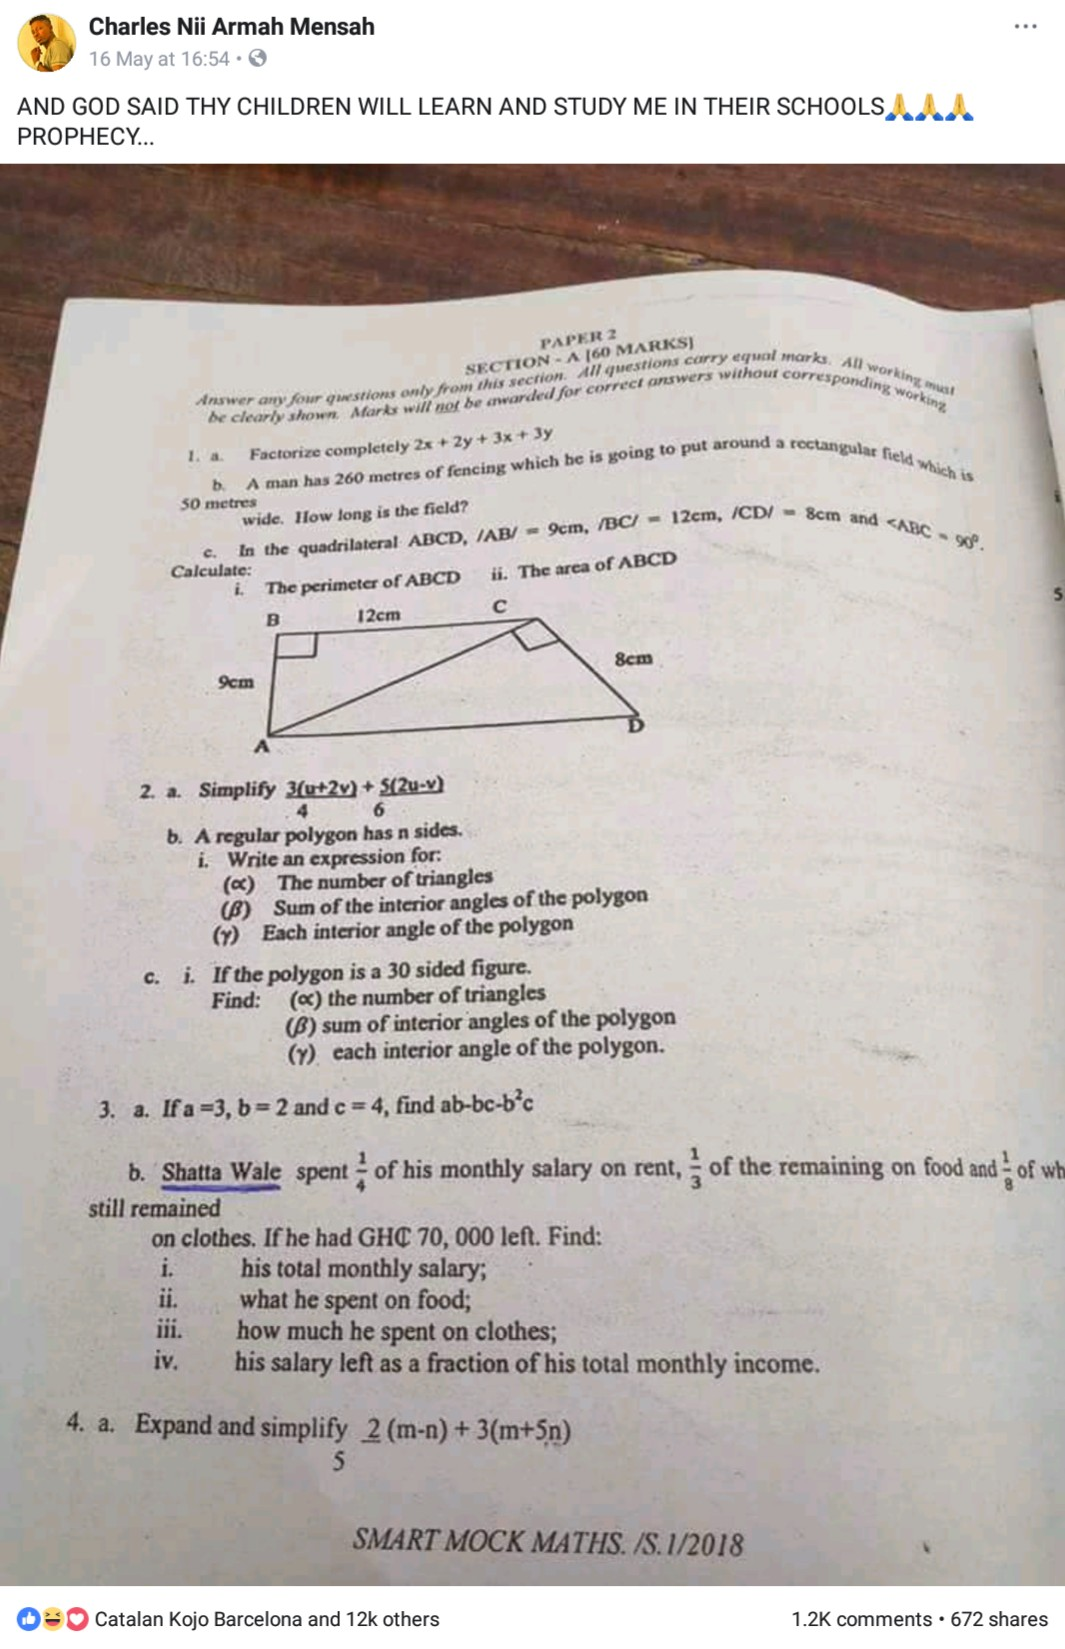 Shatta Wale Name Was Used To Set Question In Examination (3)